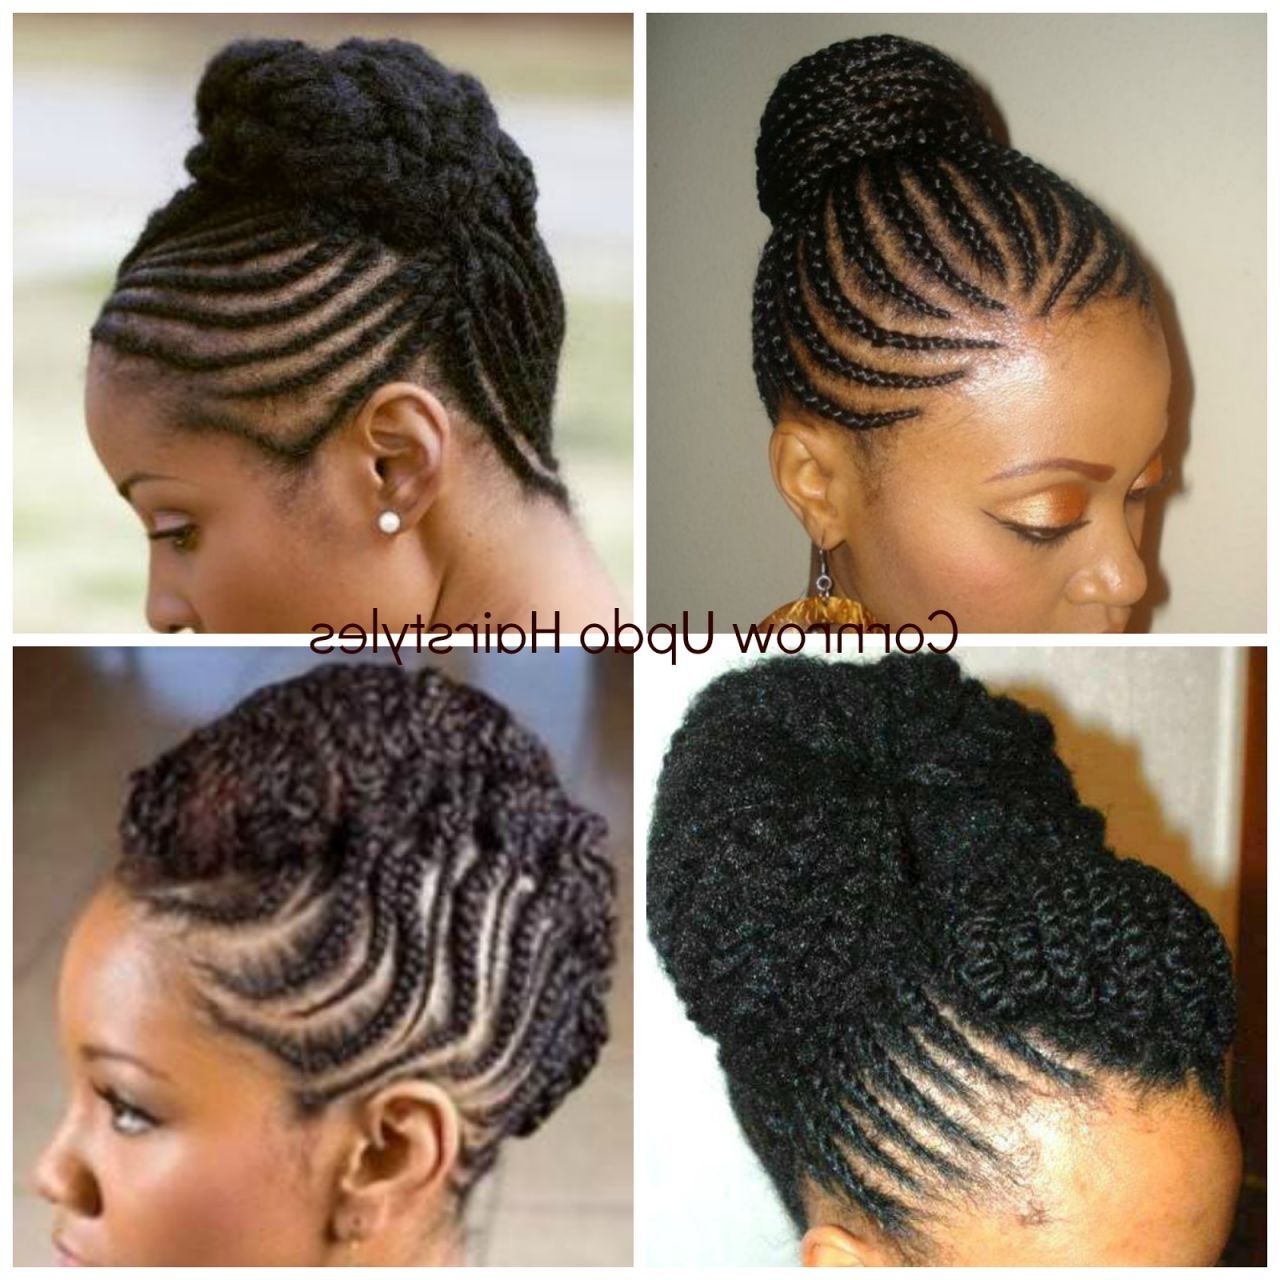 Updo Cornrow Hairstyles Pinterest • The World's Catalog Of Ideas With Updo Cornrow Hairstyles (View 13 of 15)